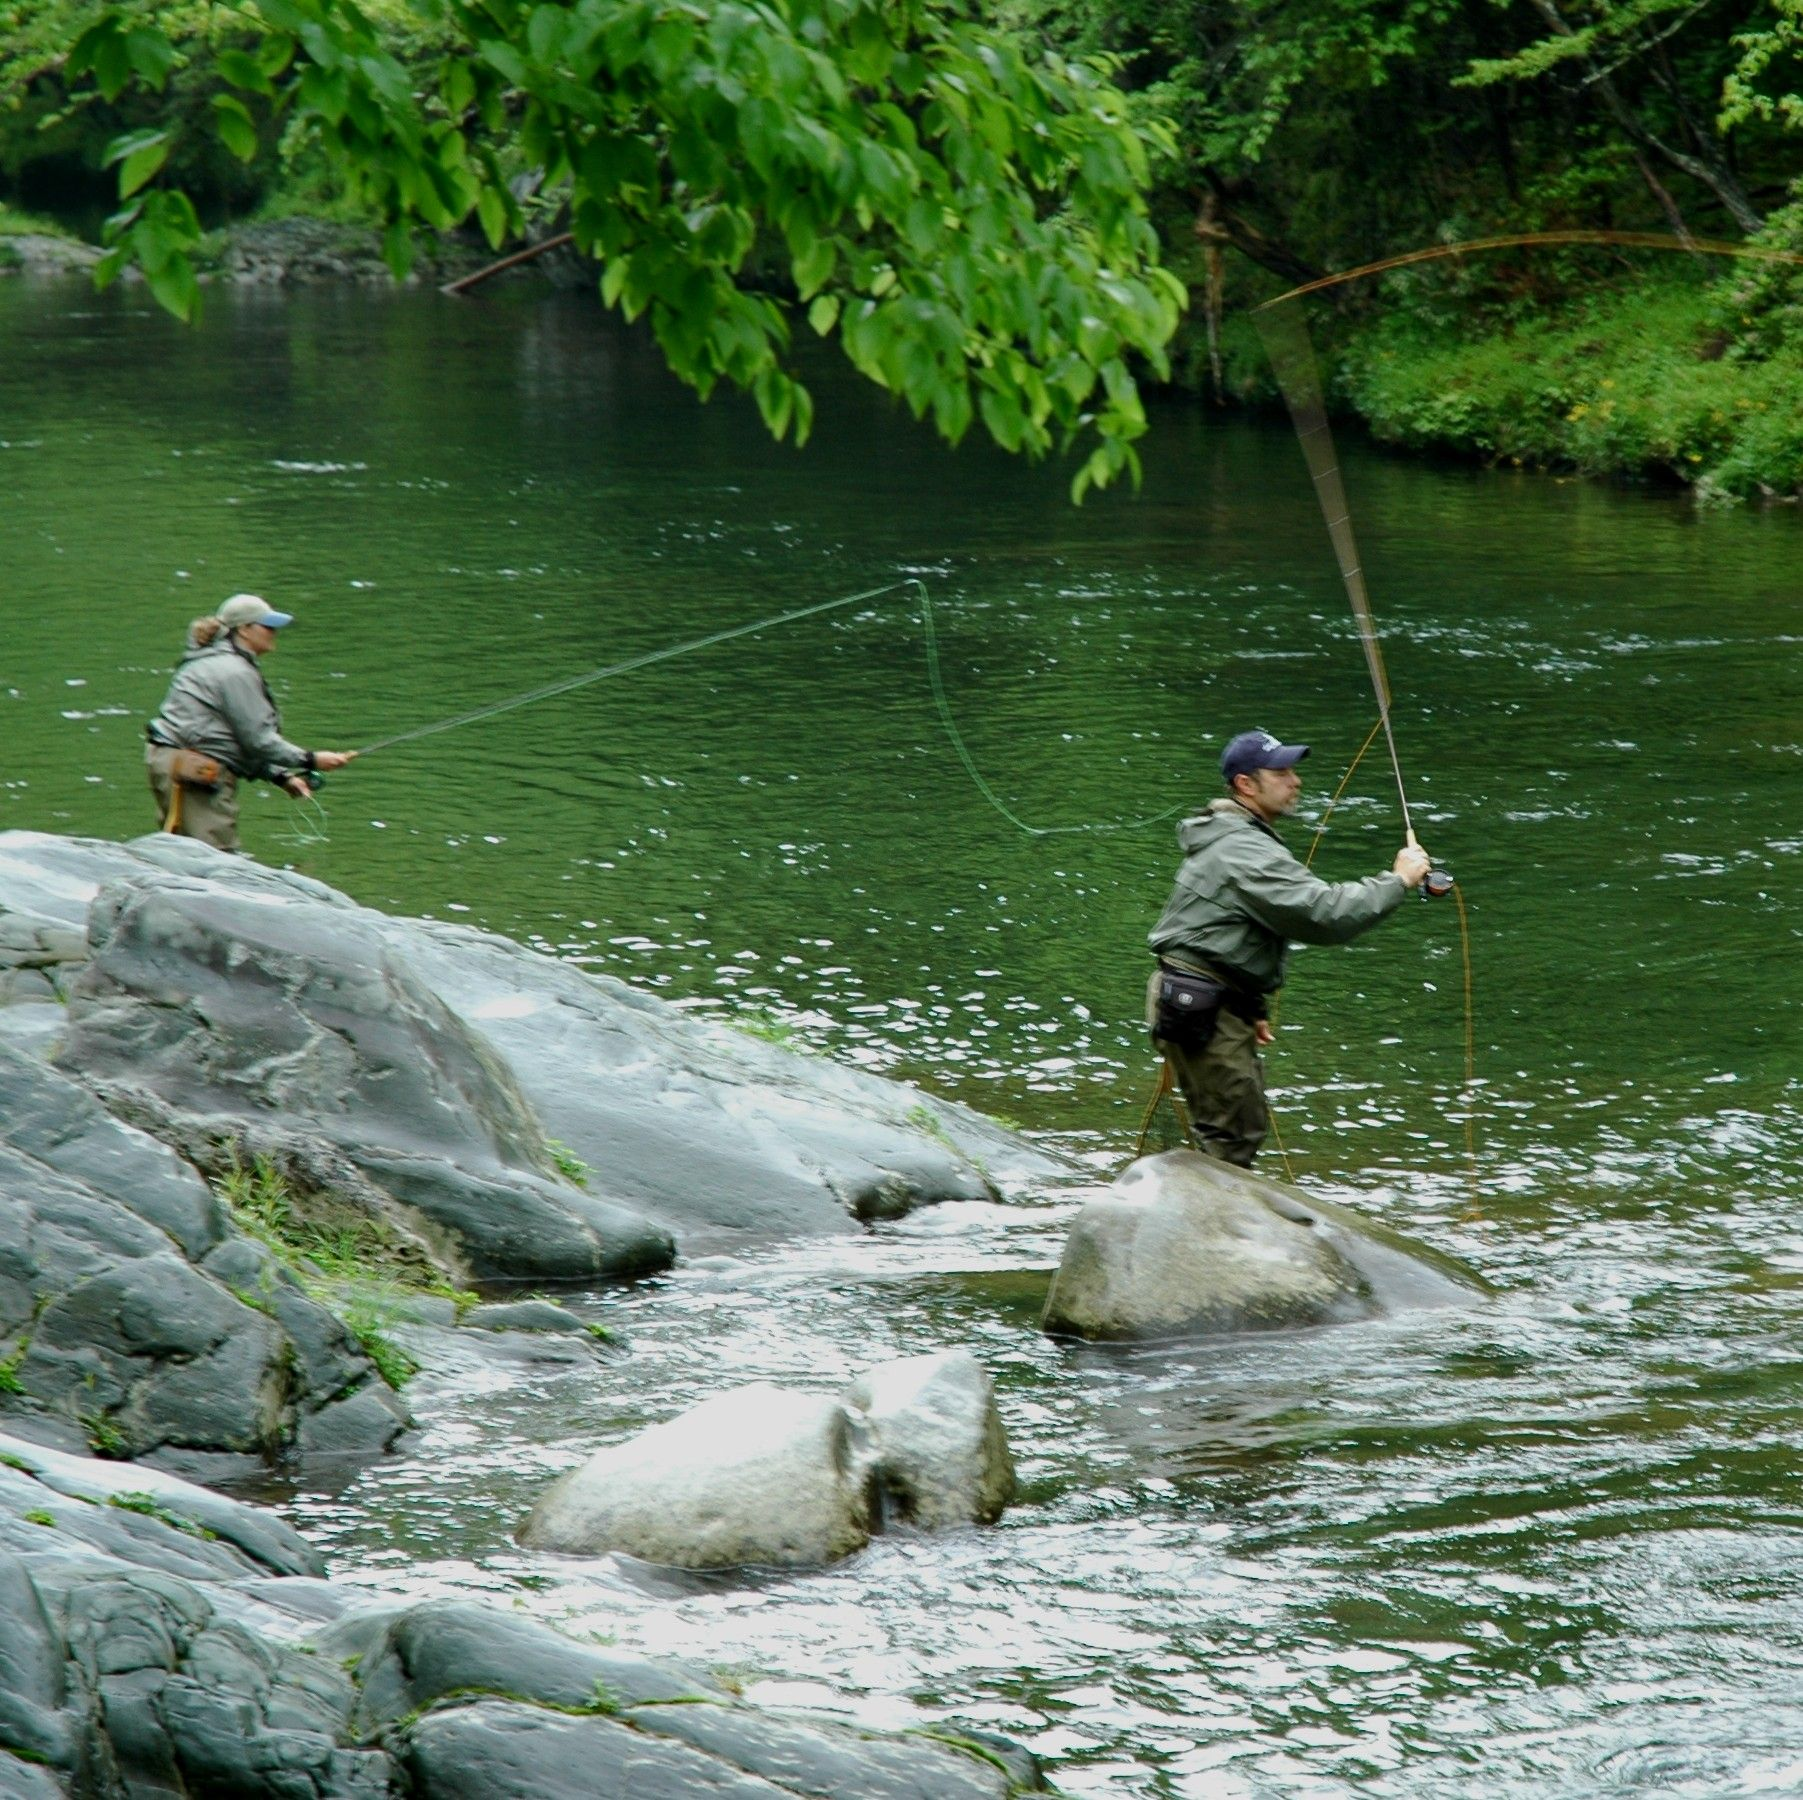 Fishing in the Smoky Mountains